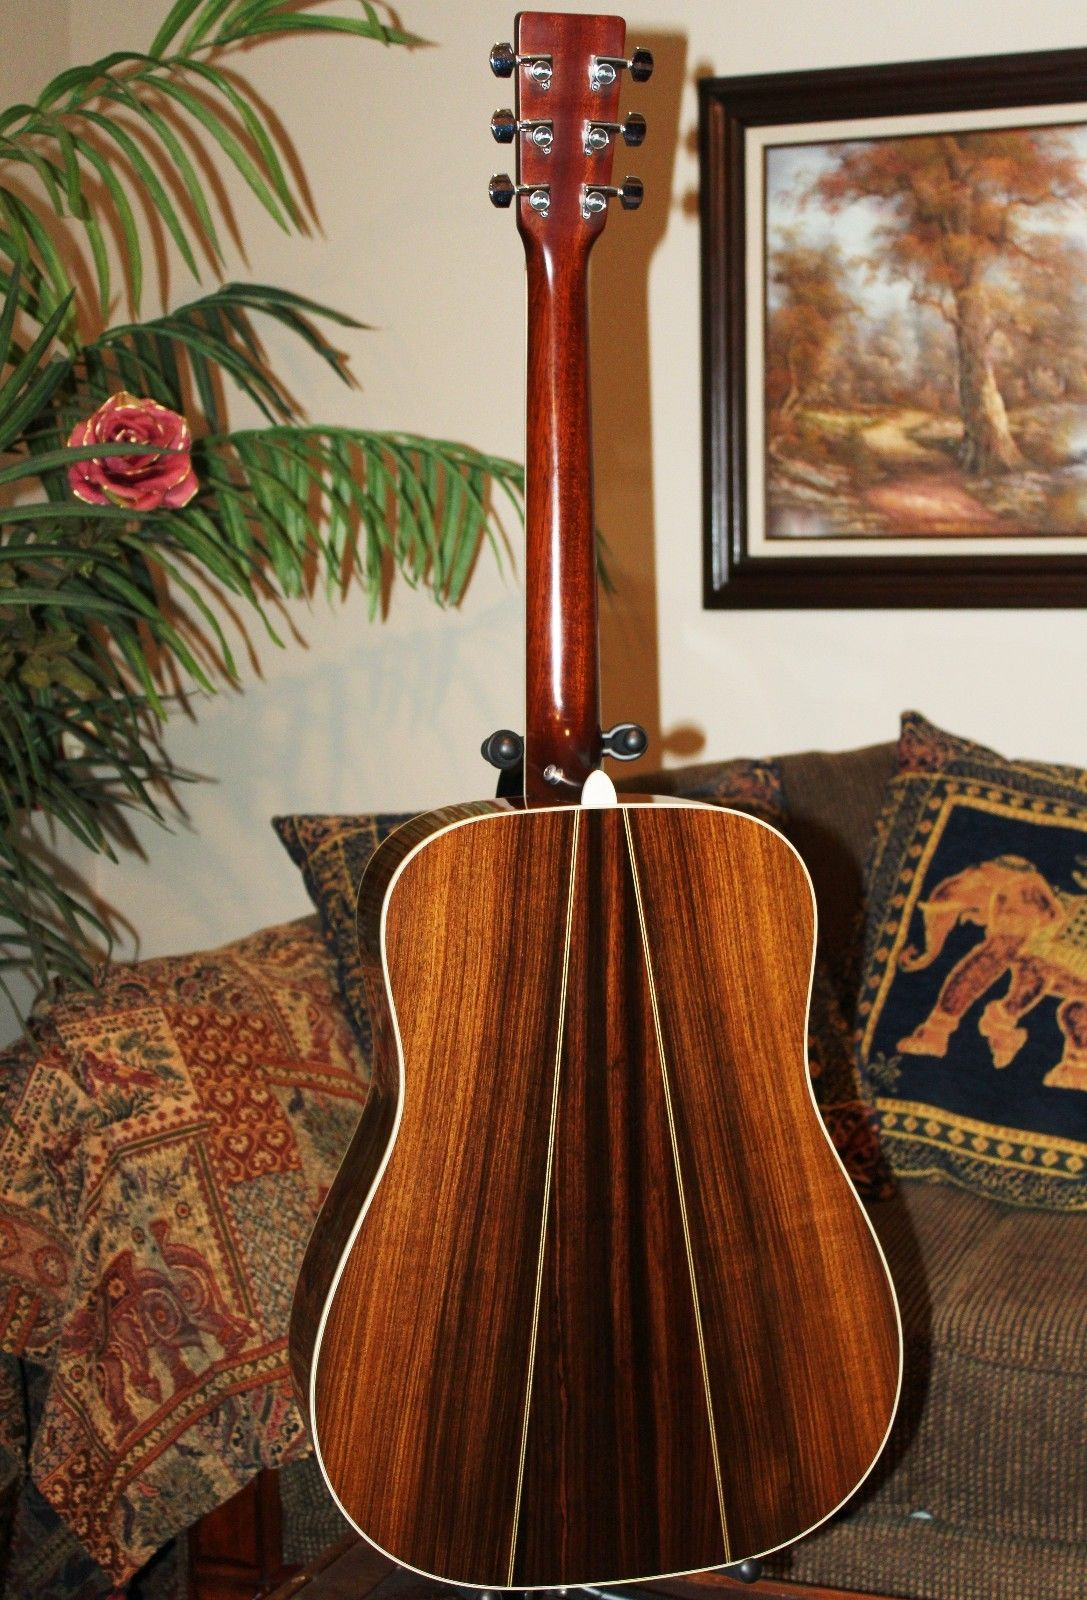 1991 martin d 35 pure acoustic guitar deep warm vibes amazing clarity loud guitar of china. Black Bedroom Furniture Sets. Home Design Ideas